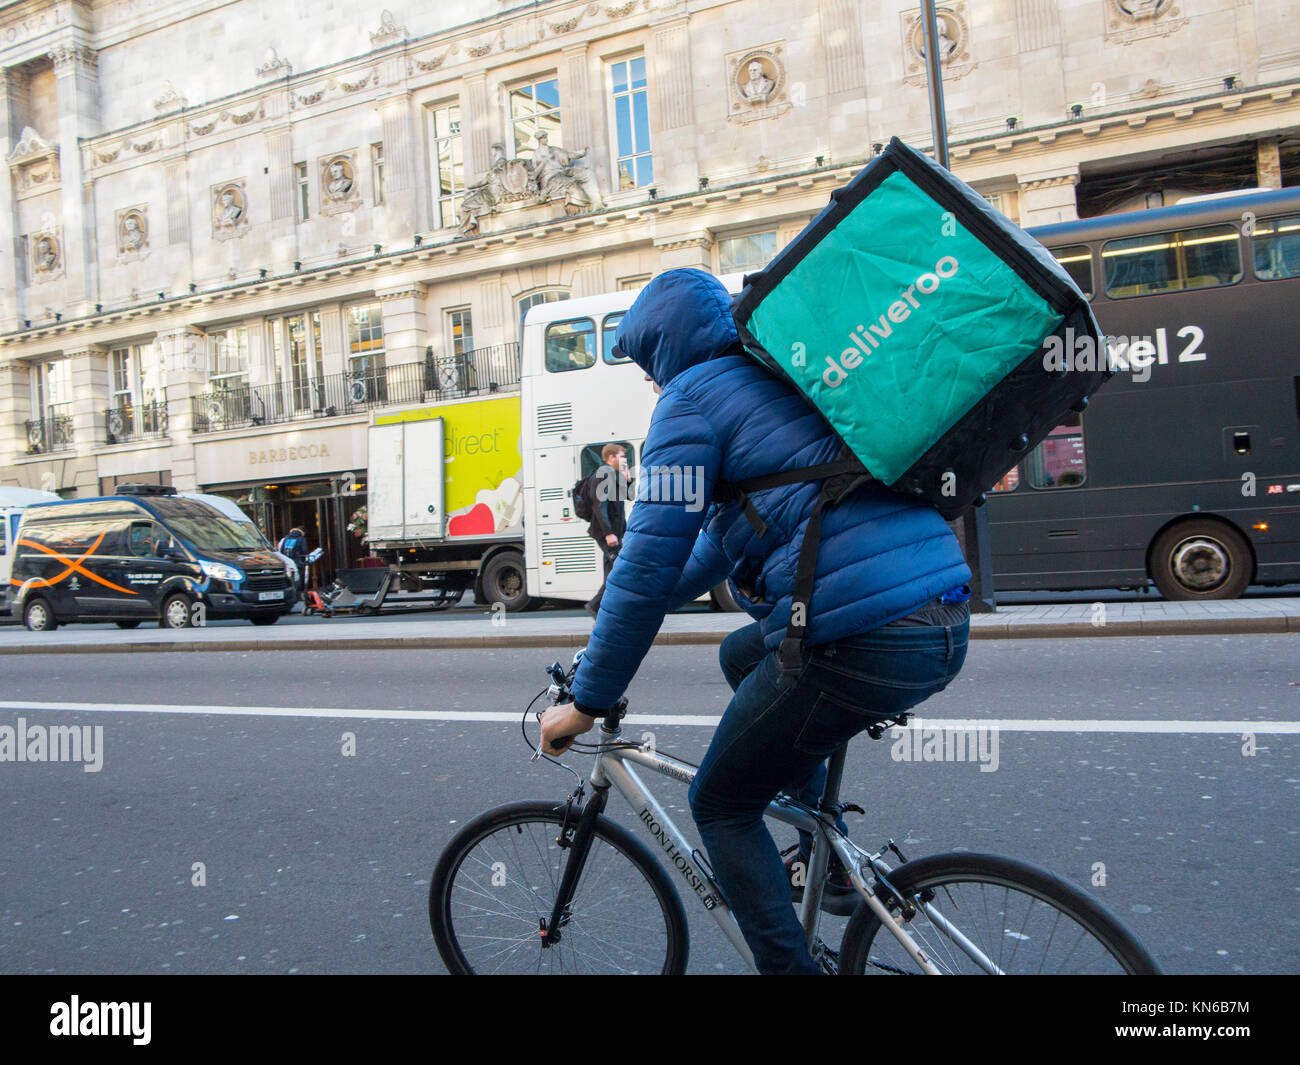 A Deliveroo cyclist on Piccadilly in London - Stock Image